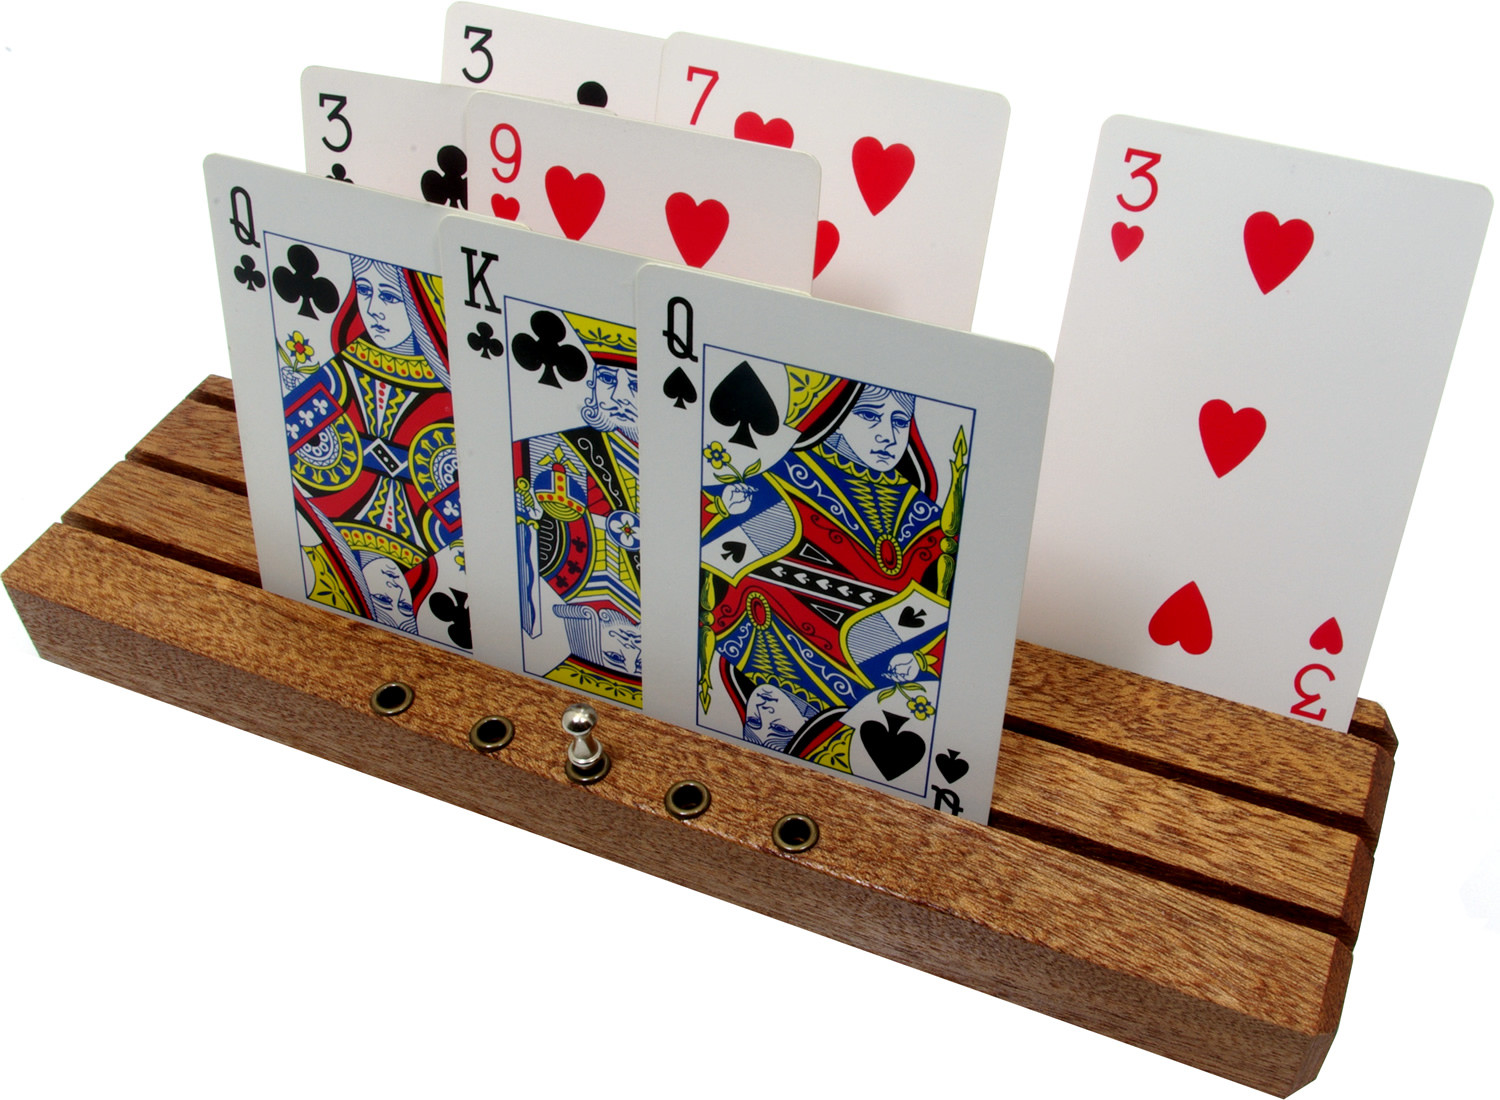 Deluxe playing card racks / holders with scoring pegs